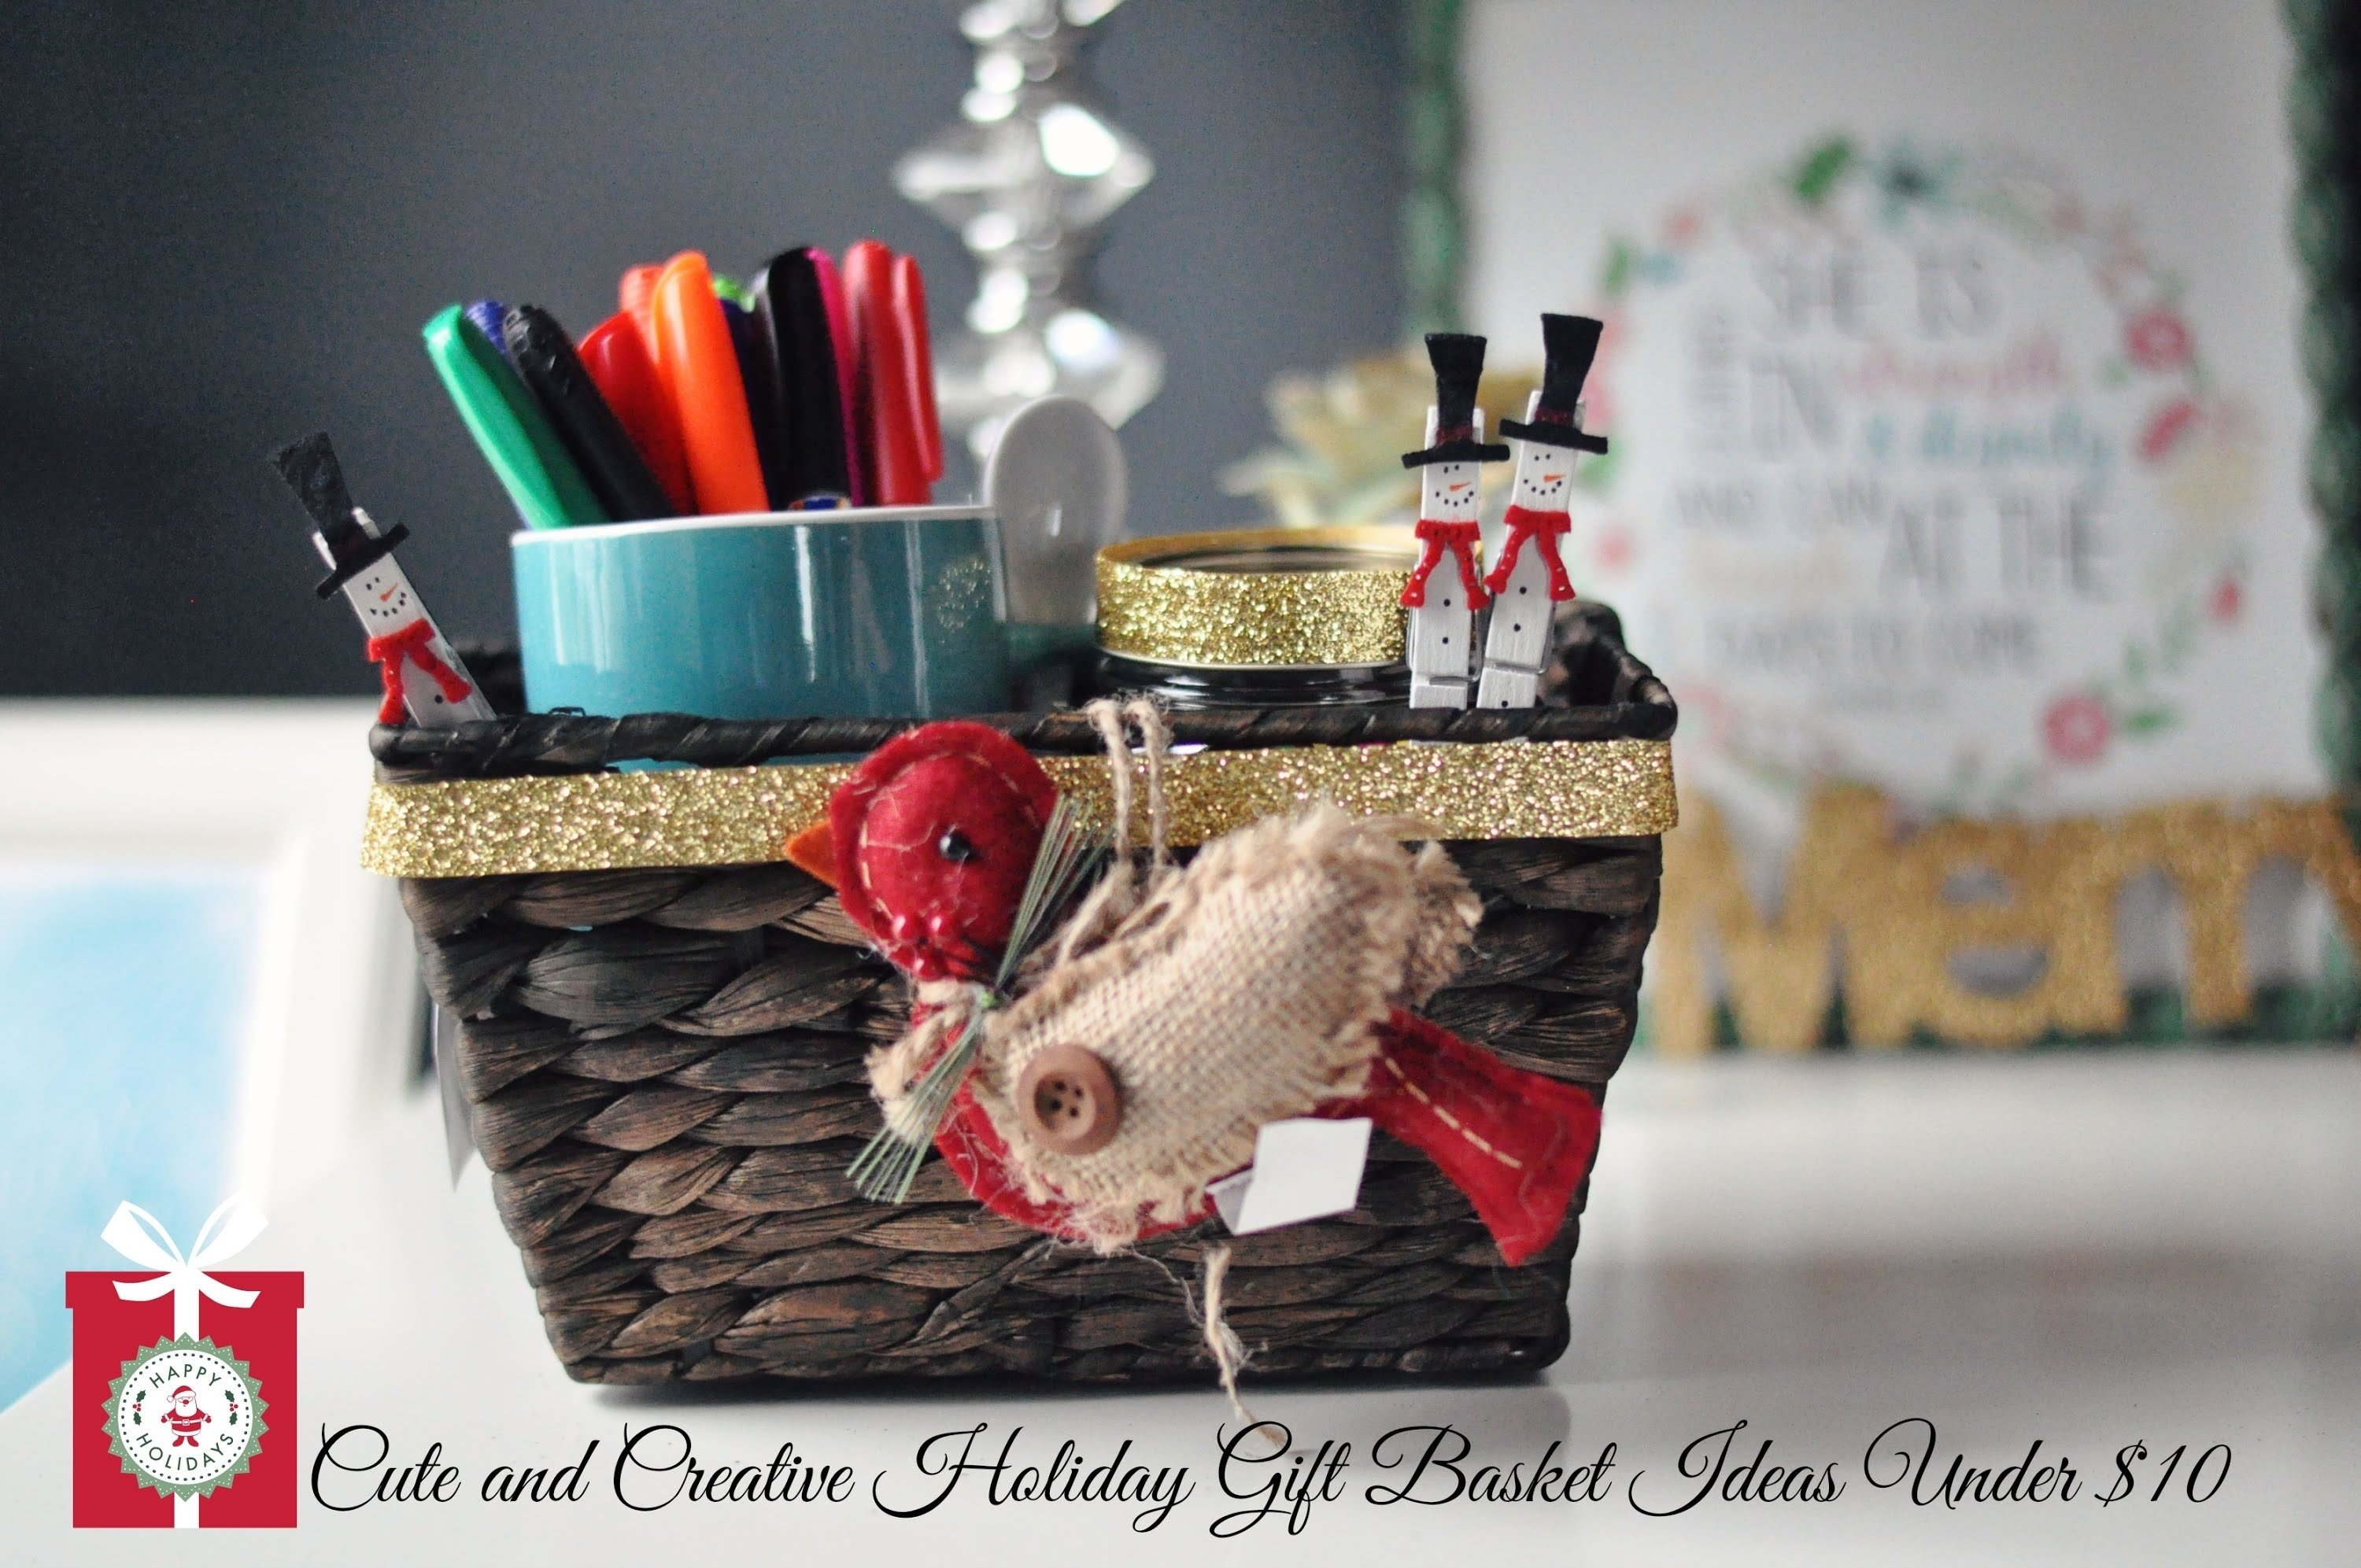 10 Great Homemade Holiday Gift Basket Ideas diy christmas gifts cute creative holiday gift baskets for under 2